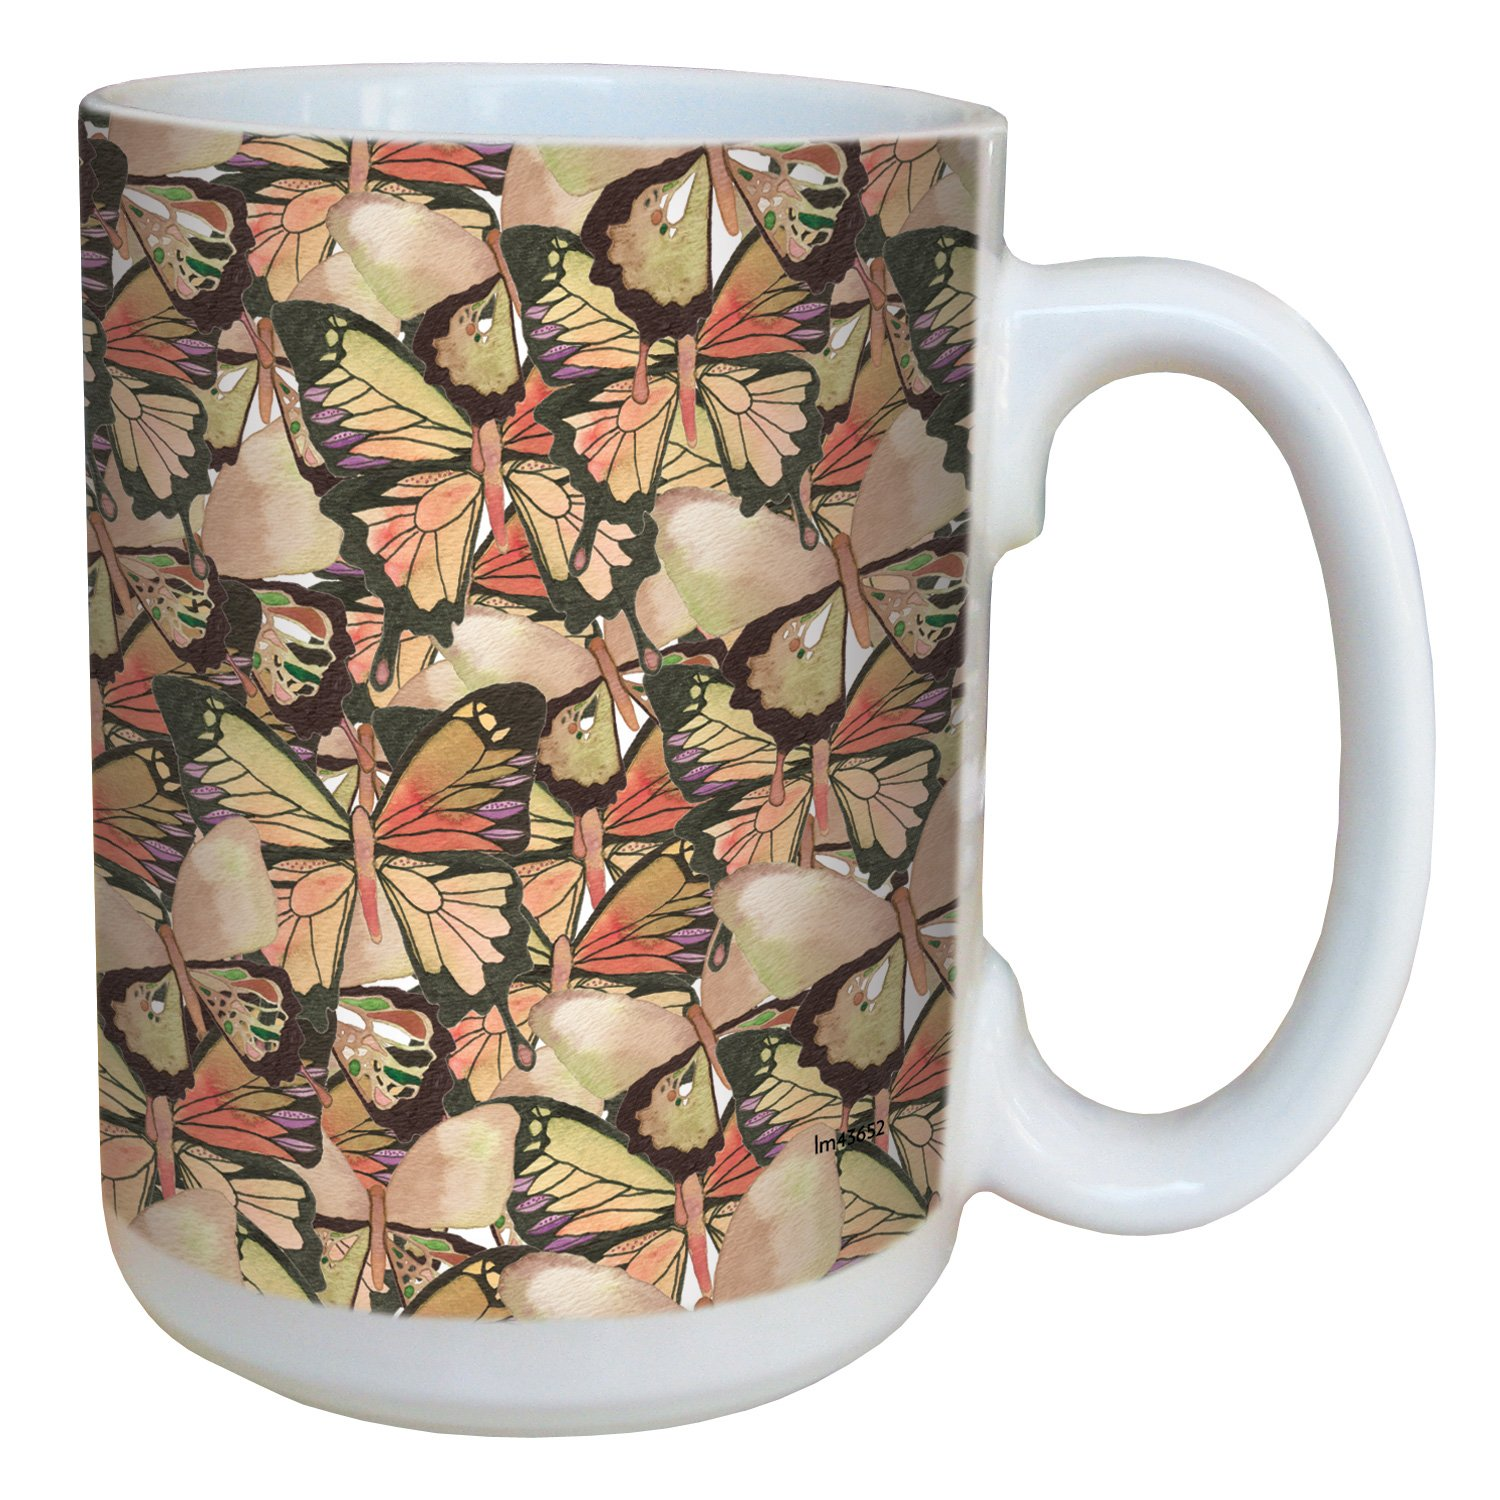 Tree-Free Greetings lm43652 Amazing Butterfly Pattern by Shell Rummel Ceramic Mug with Full-Sized Handle 15-Ounce Multicolored